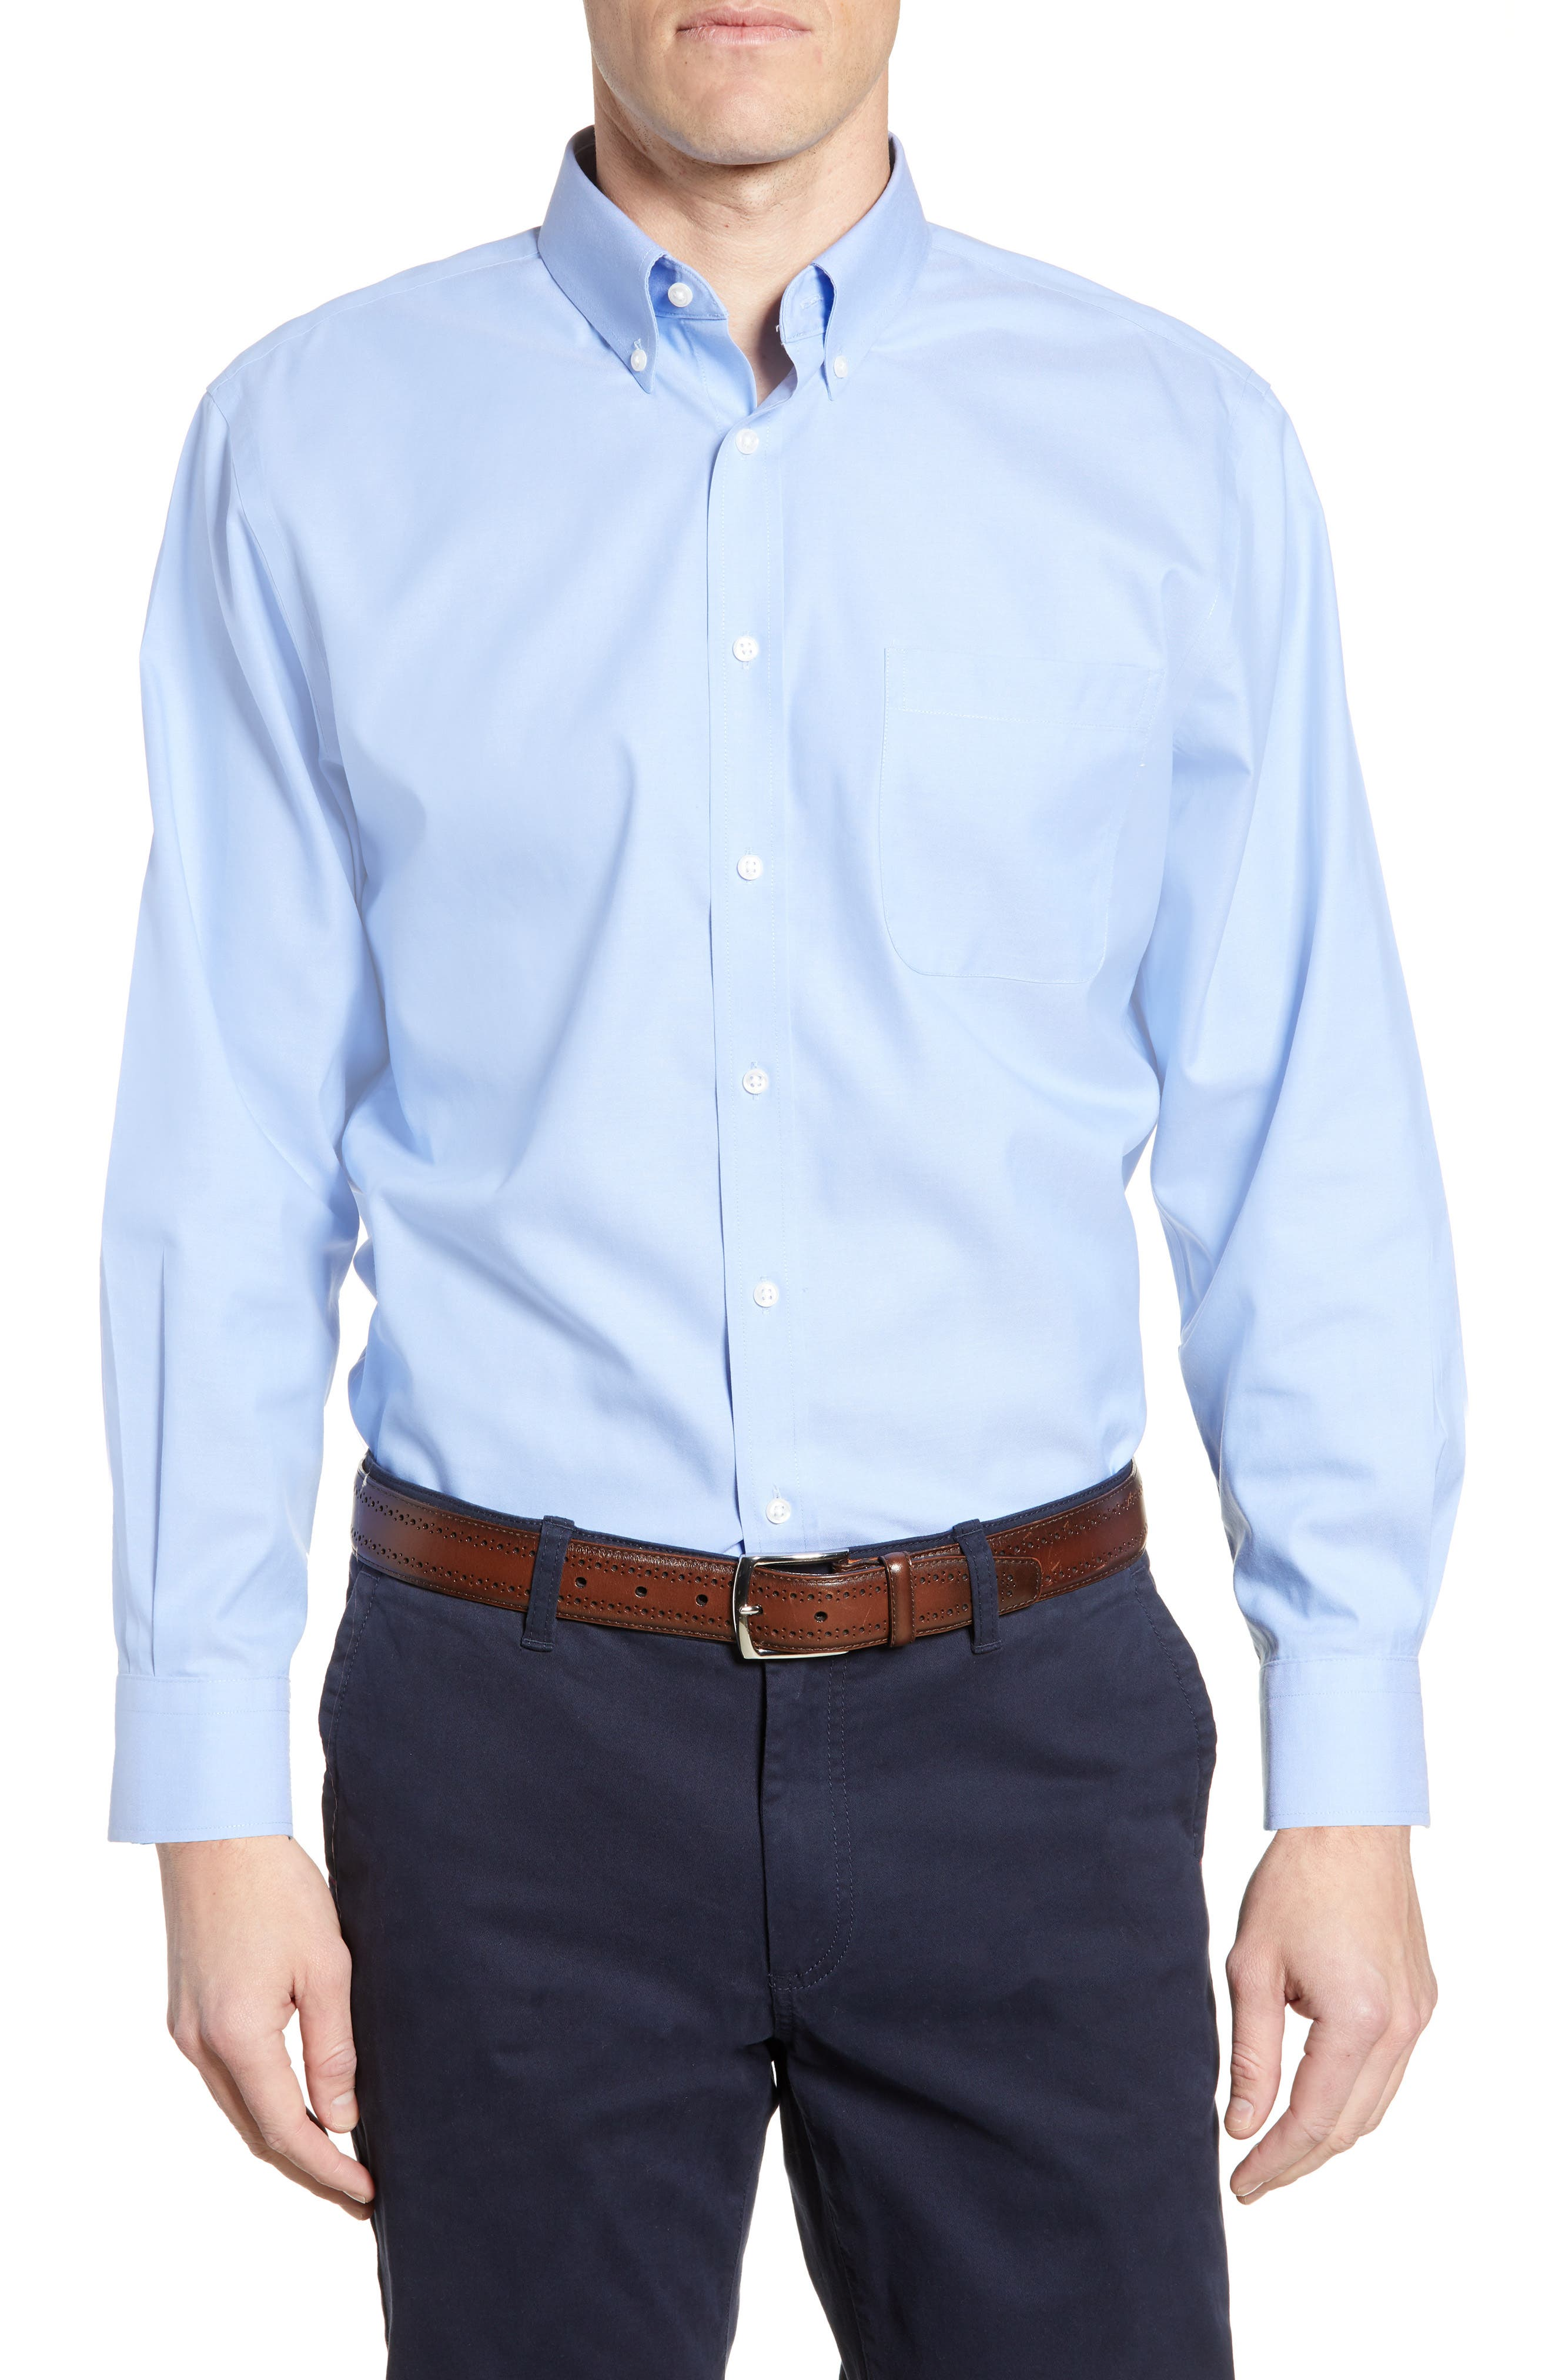 Nordstrom Shop Smartcare(TM) Traditional Fit Pinpoint Dress Shirt - Blue